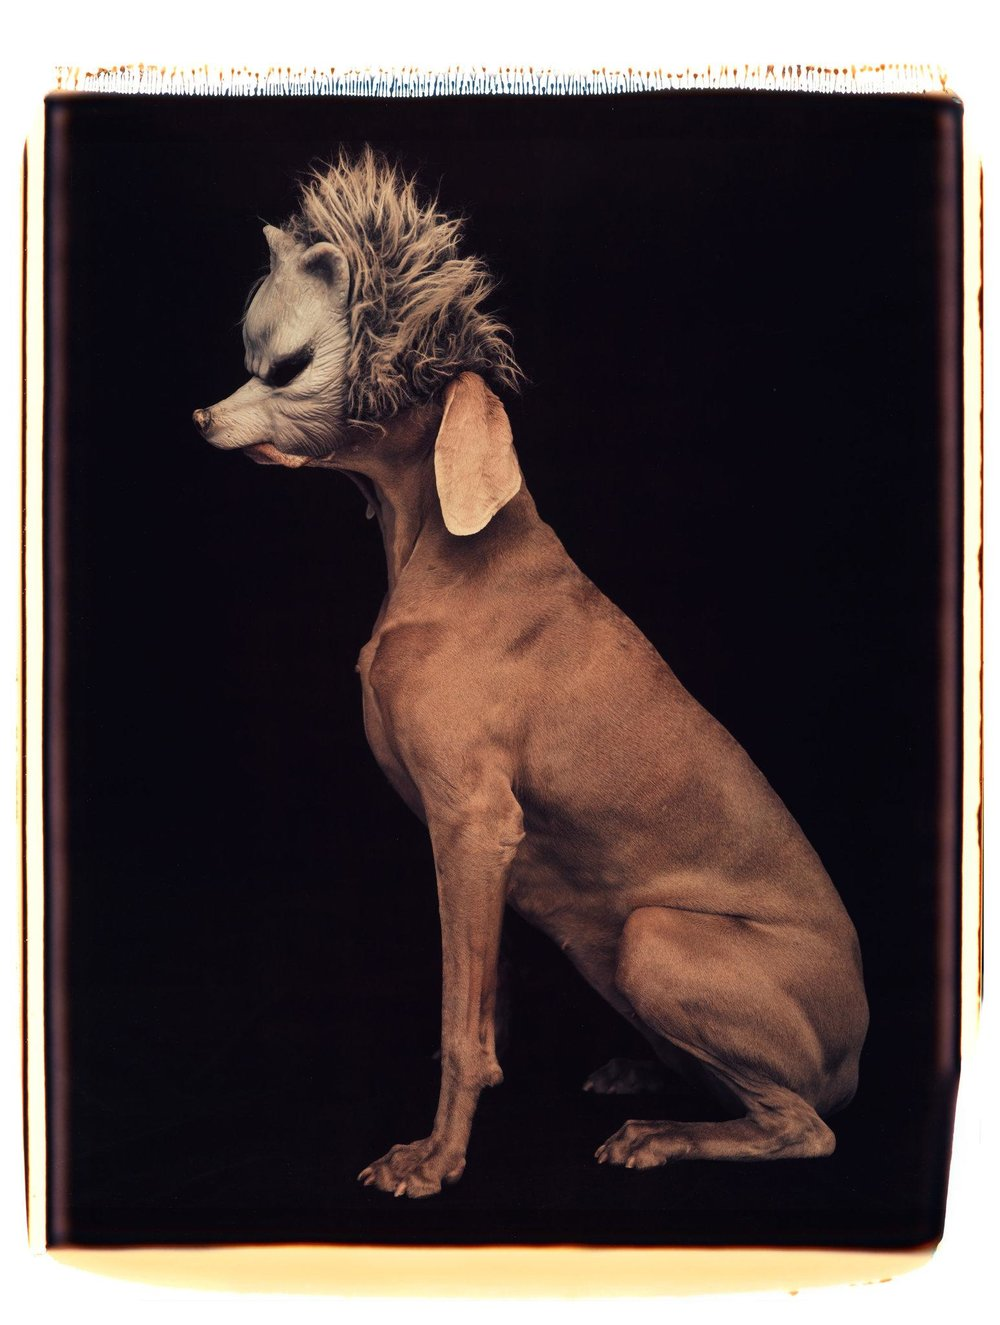 Wolf (Lobo), 1994, William Wegman